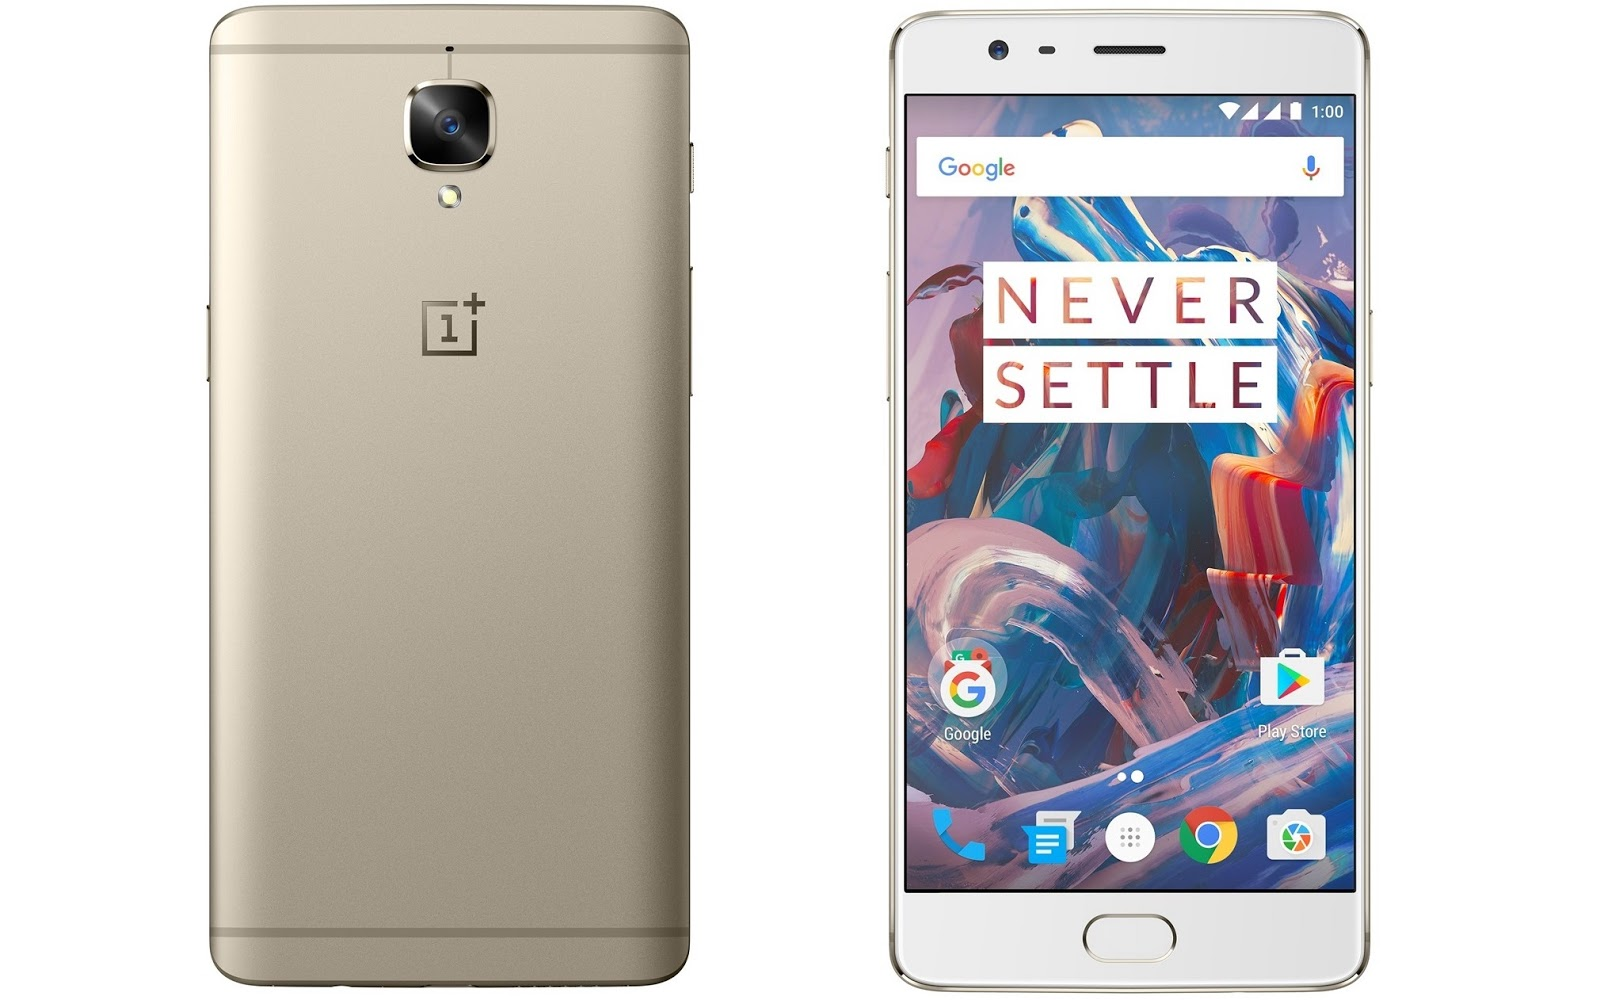 OnePlus 3 leads sales in Finland for top carrier Elisa in August - Tech Updates